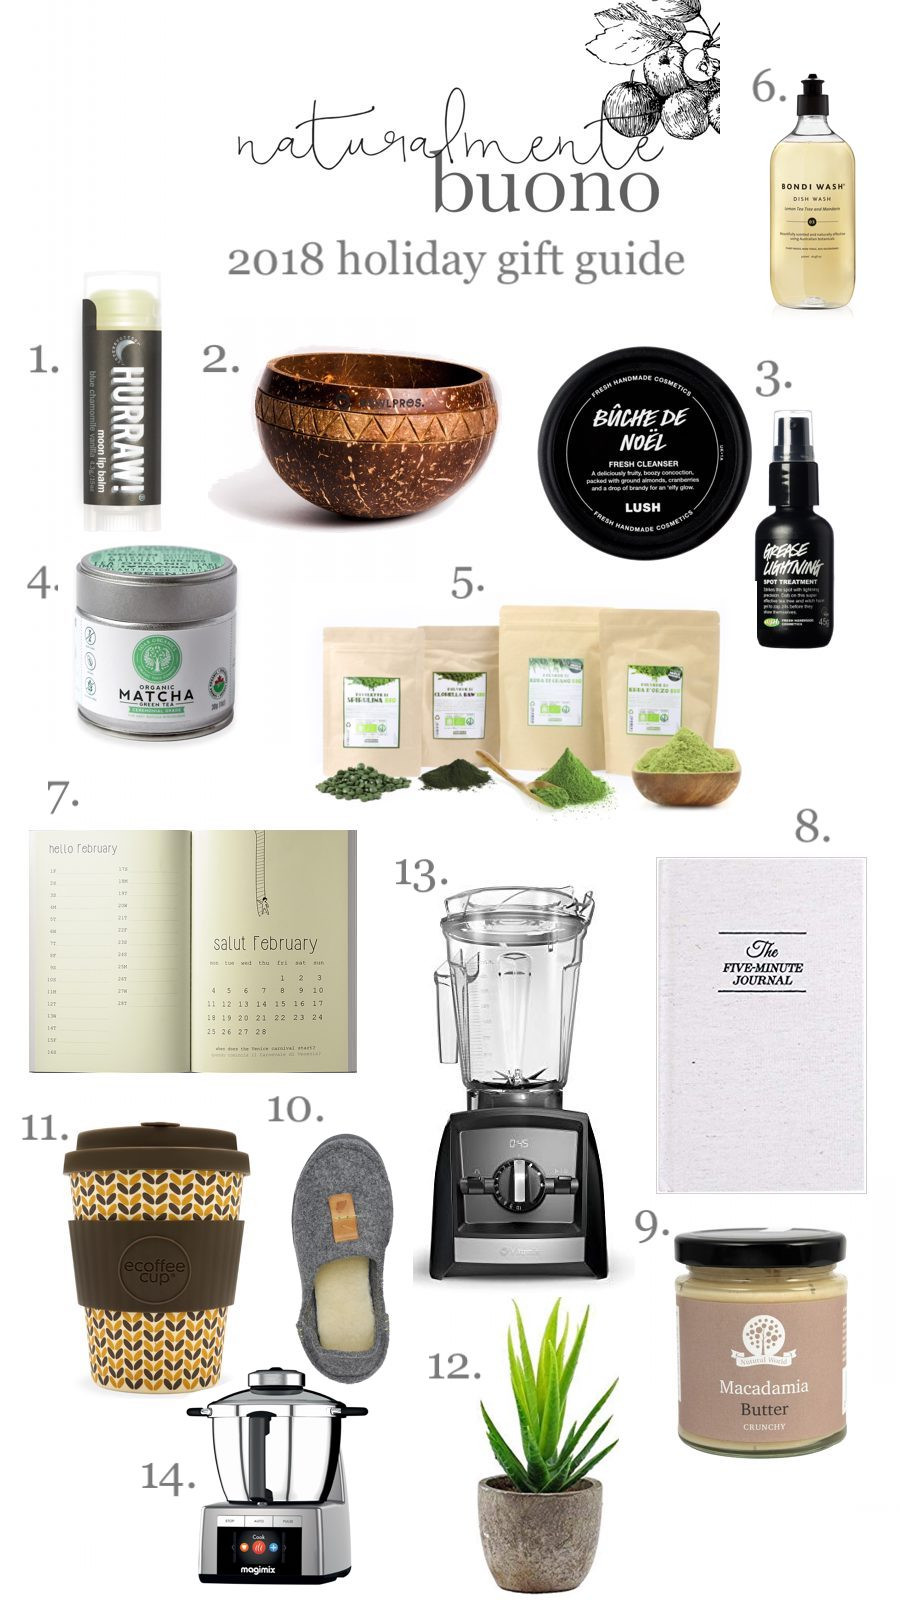 regali natale, holiday gift guide